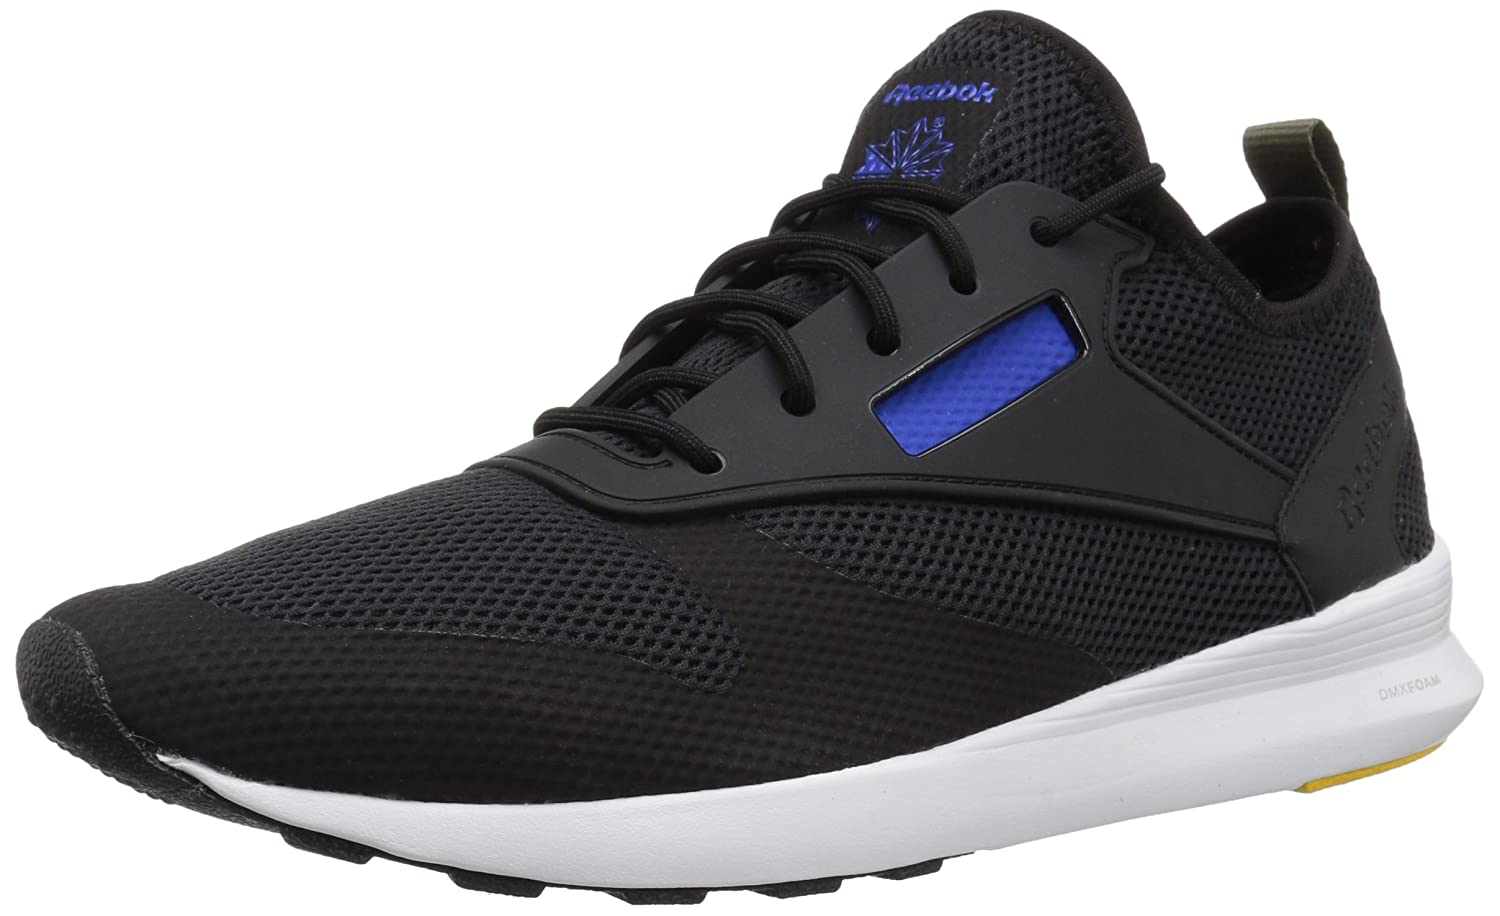 Topteck Mens Air Cushion-Running Shoes Women Lightweight Sports Sneakers  Athletic Comfy Breathable Outdoor Walking Tennis B07FMFXVF7  Label47 13D(M)US . fc28c07515